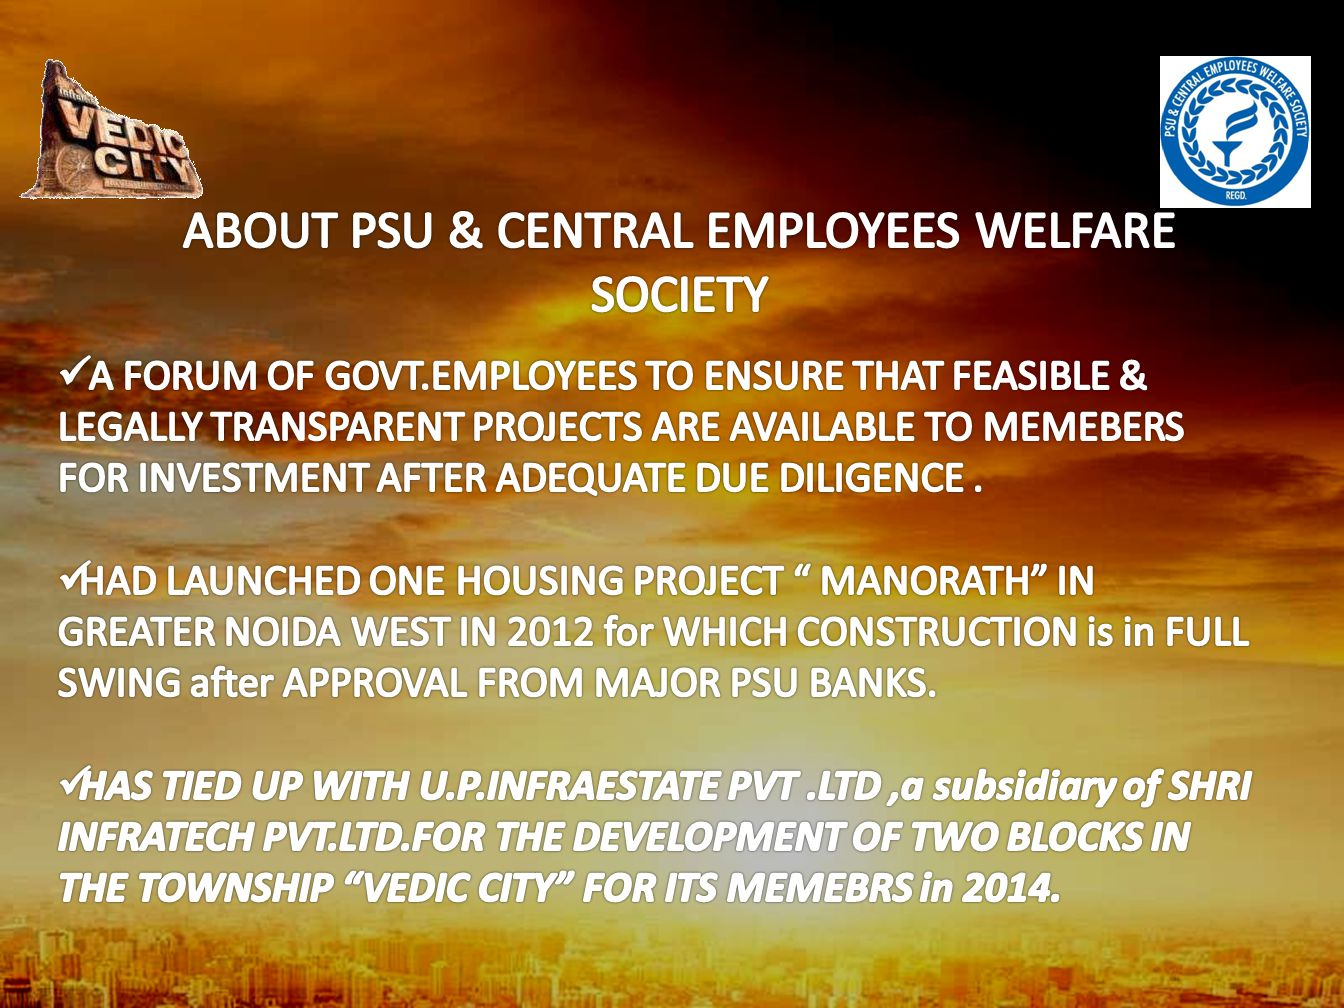 ABOUT PSU & CENTRAL EMPLOYEES WELFARE SOCIETY